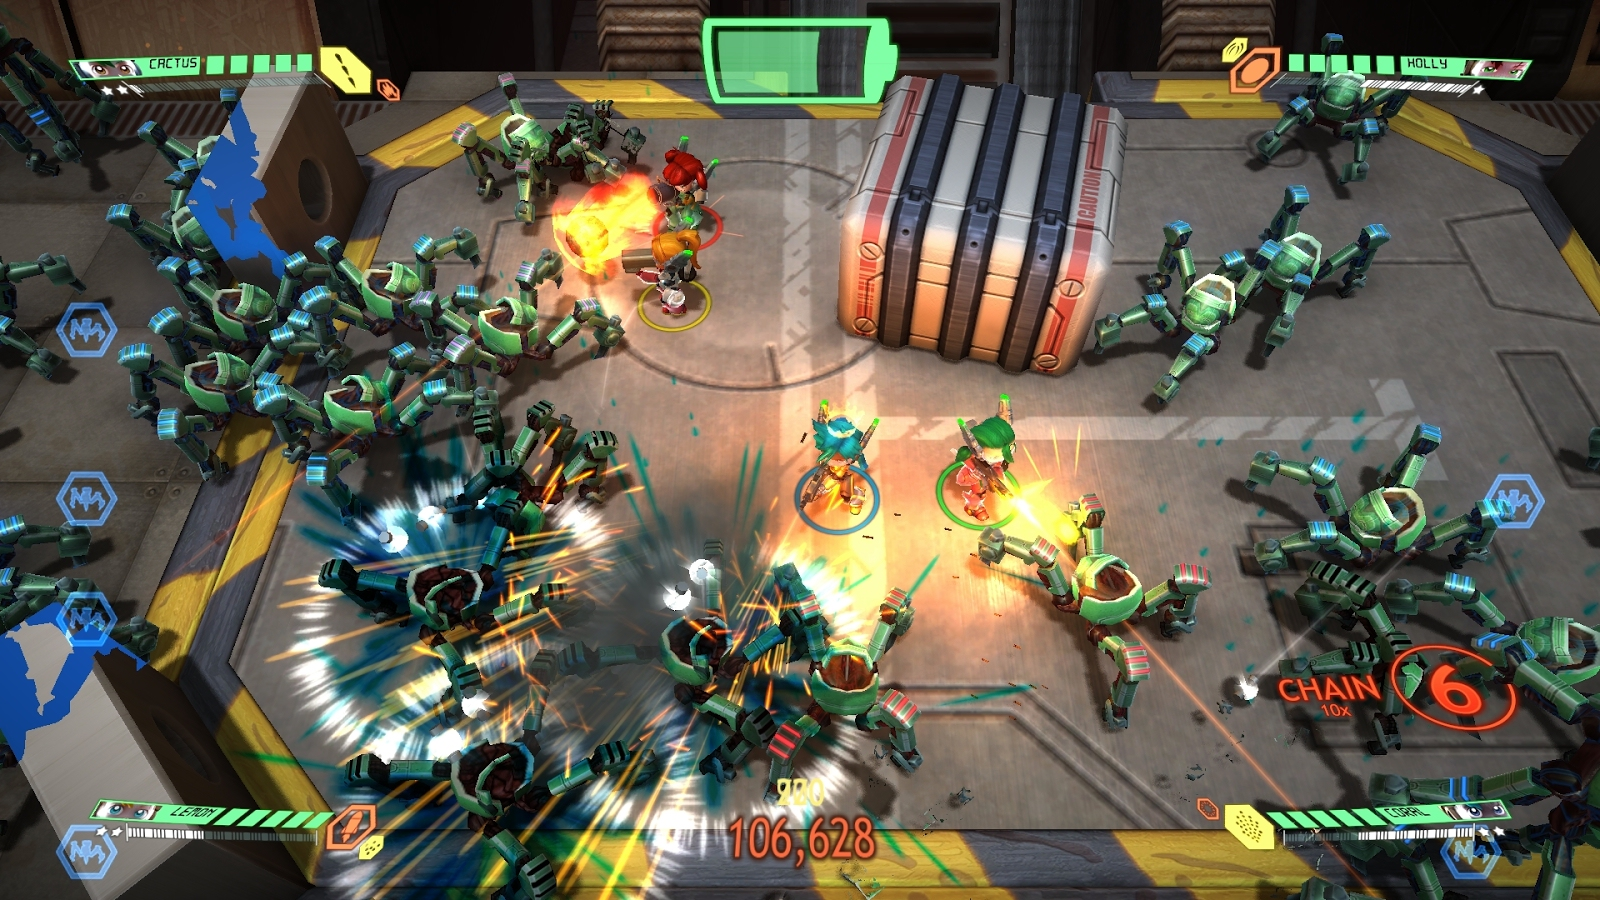 Assault Android Cactus will bring hectic dual stick action to PS Vita in early 2016